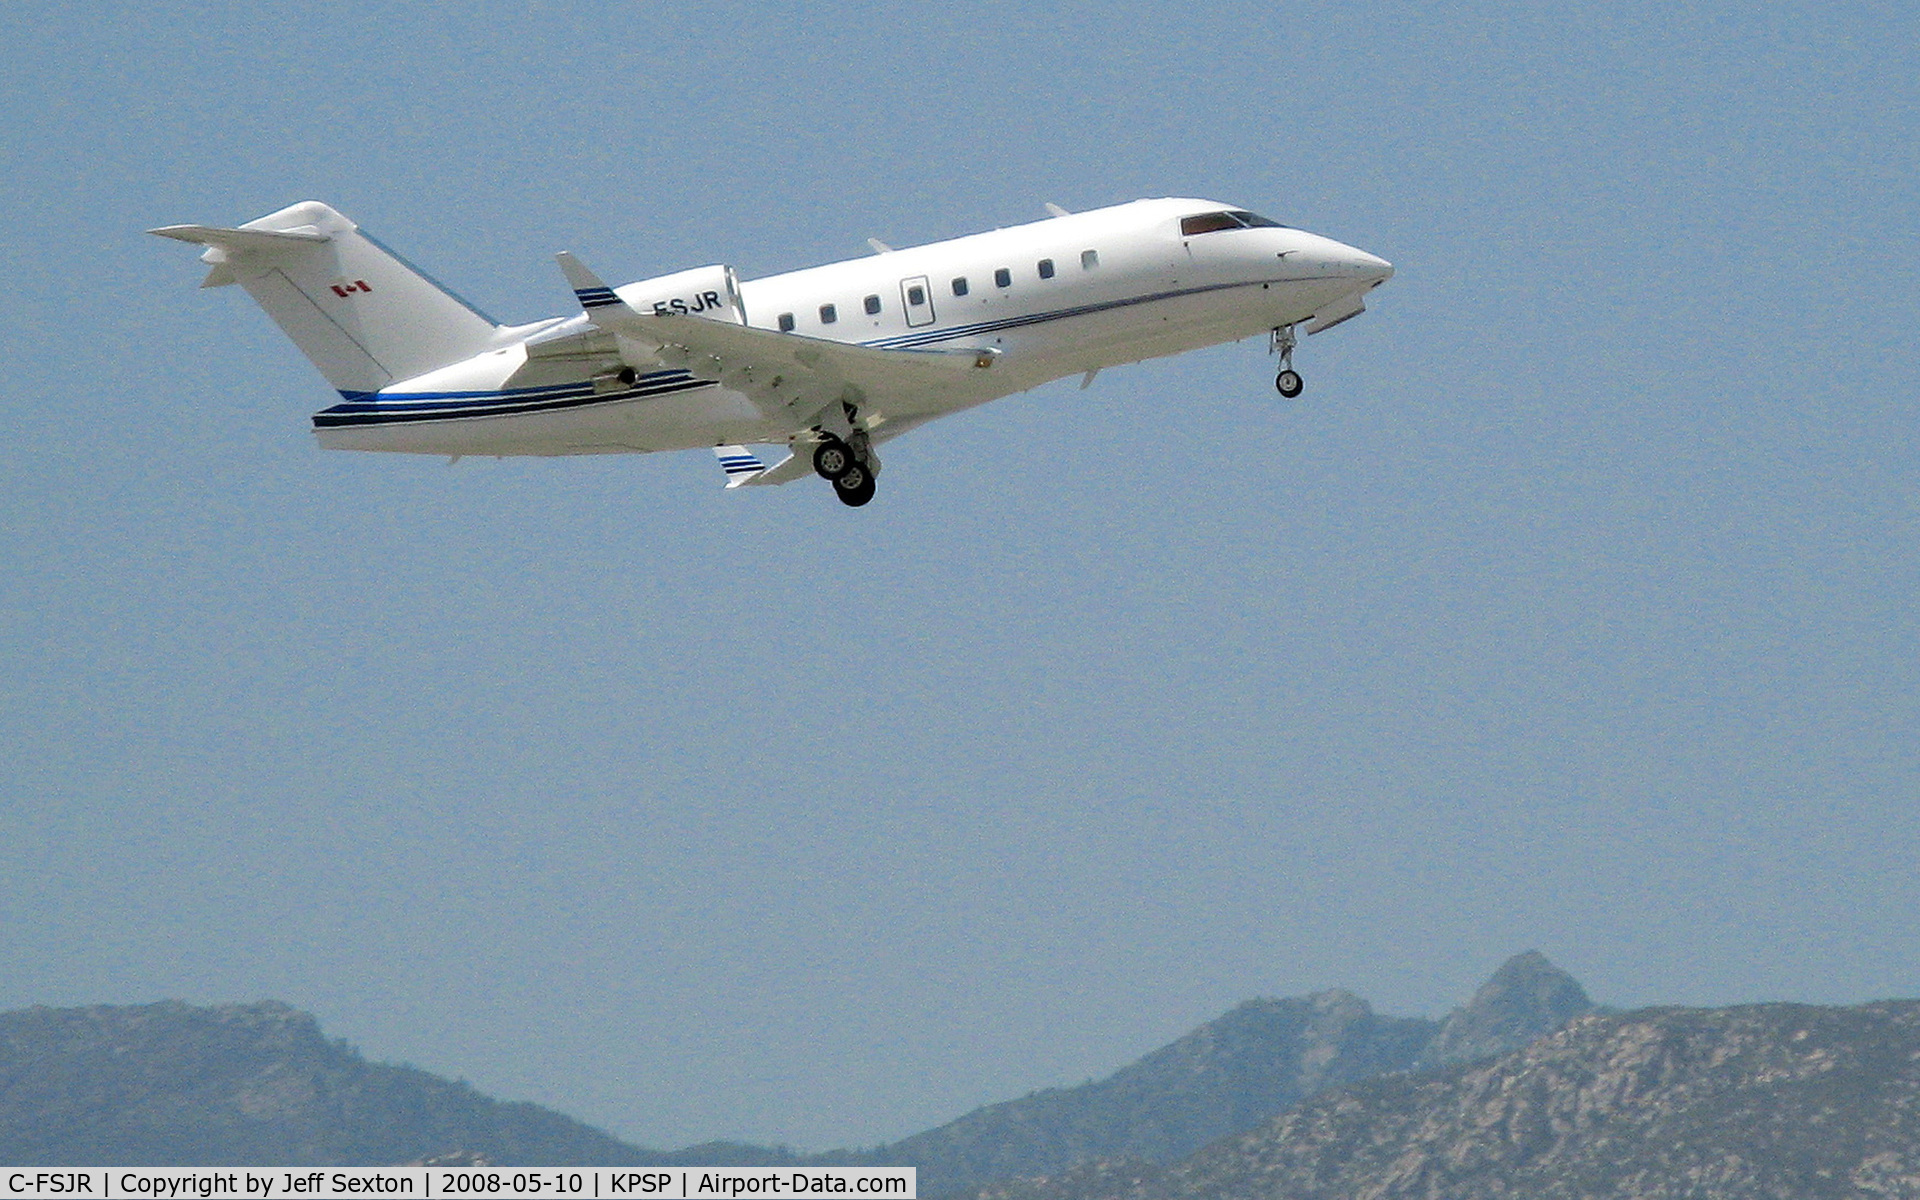 C-FSJR, 1999 Canadair Challenger 605 (CL-600-2B16) C/N 5413, Take-off from Palm Springs International